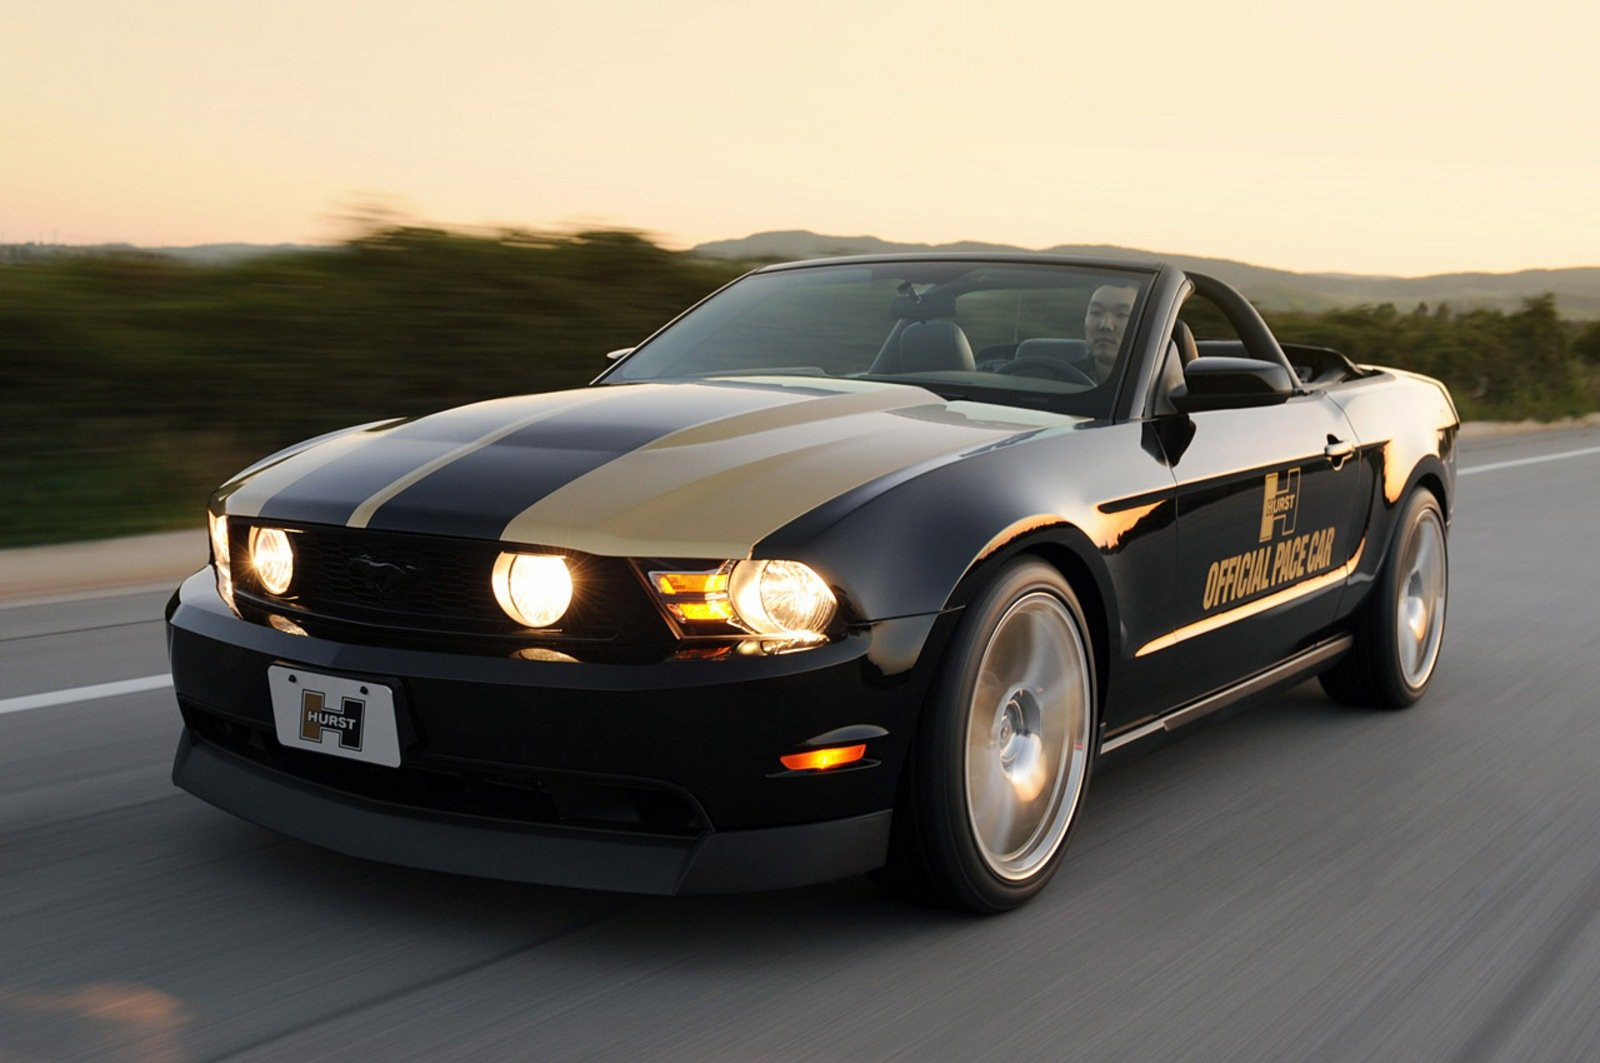 Ford Racing Mustang Challenge Pace Car By Hurst News - Top ...